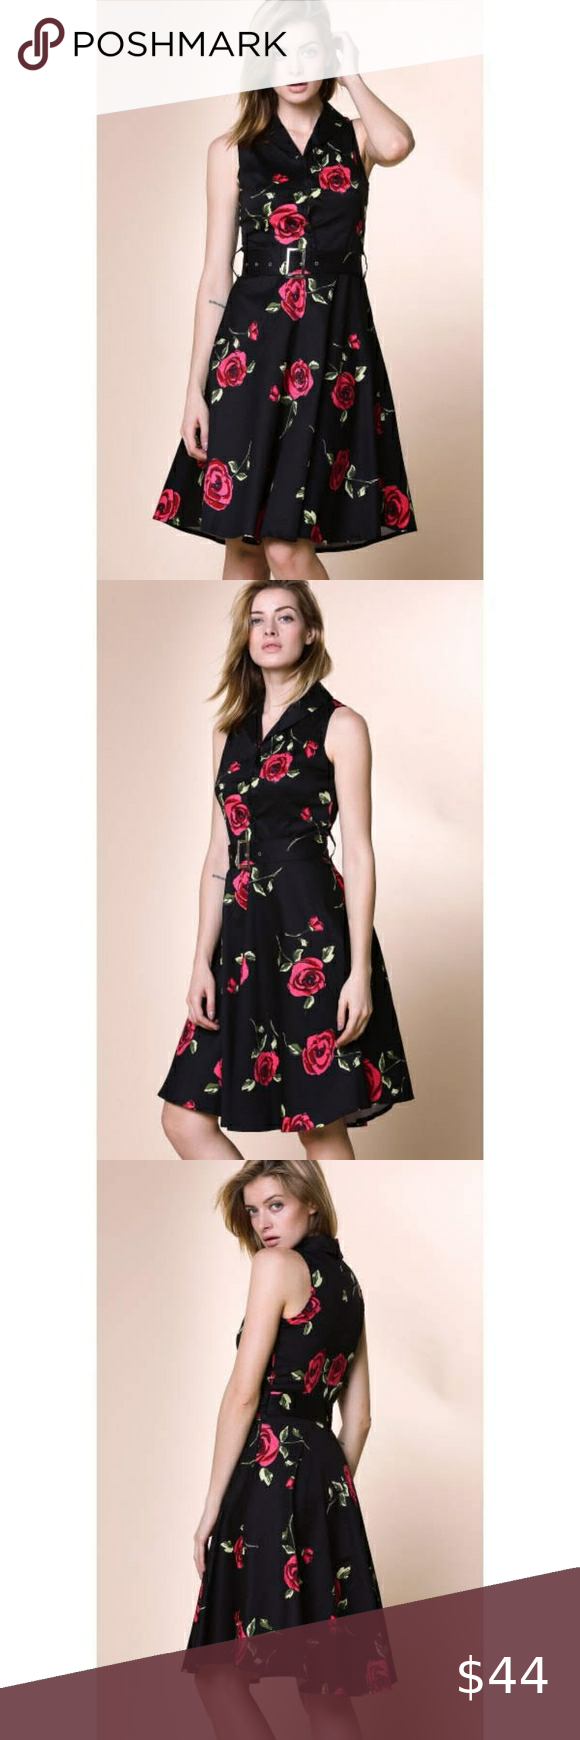 Only 1 Vintage Dress With Roses Black Vintage Style Dress With Roses It Is Sleeveless And Has A V Neck Vintage Dresses Vintage Fashion Vintage Style Dresses [ 1740 x 580 Pixel ]